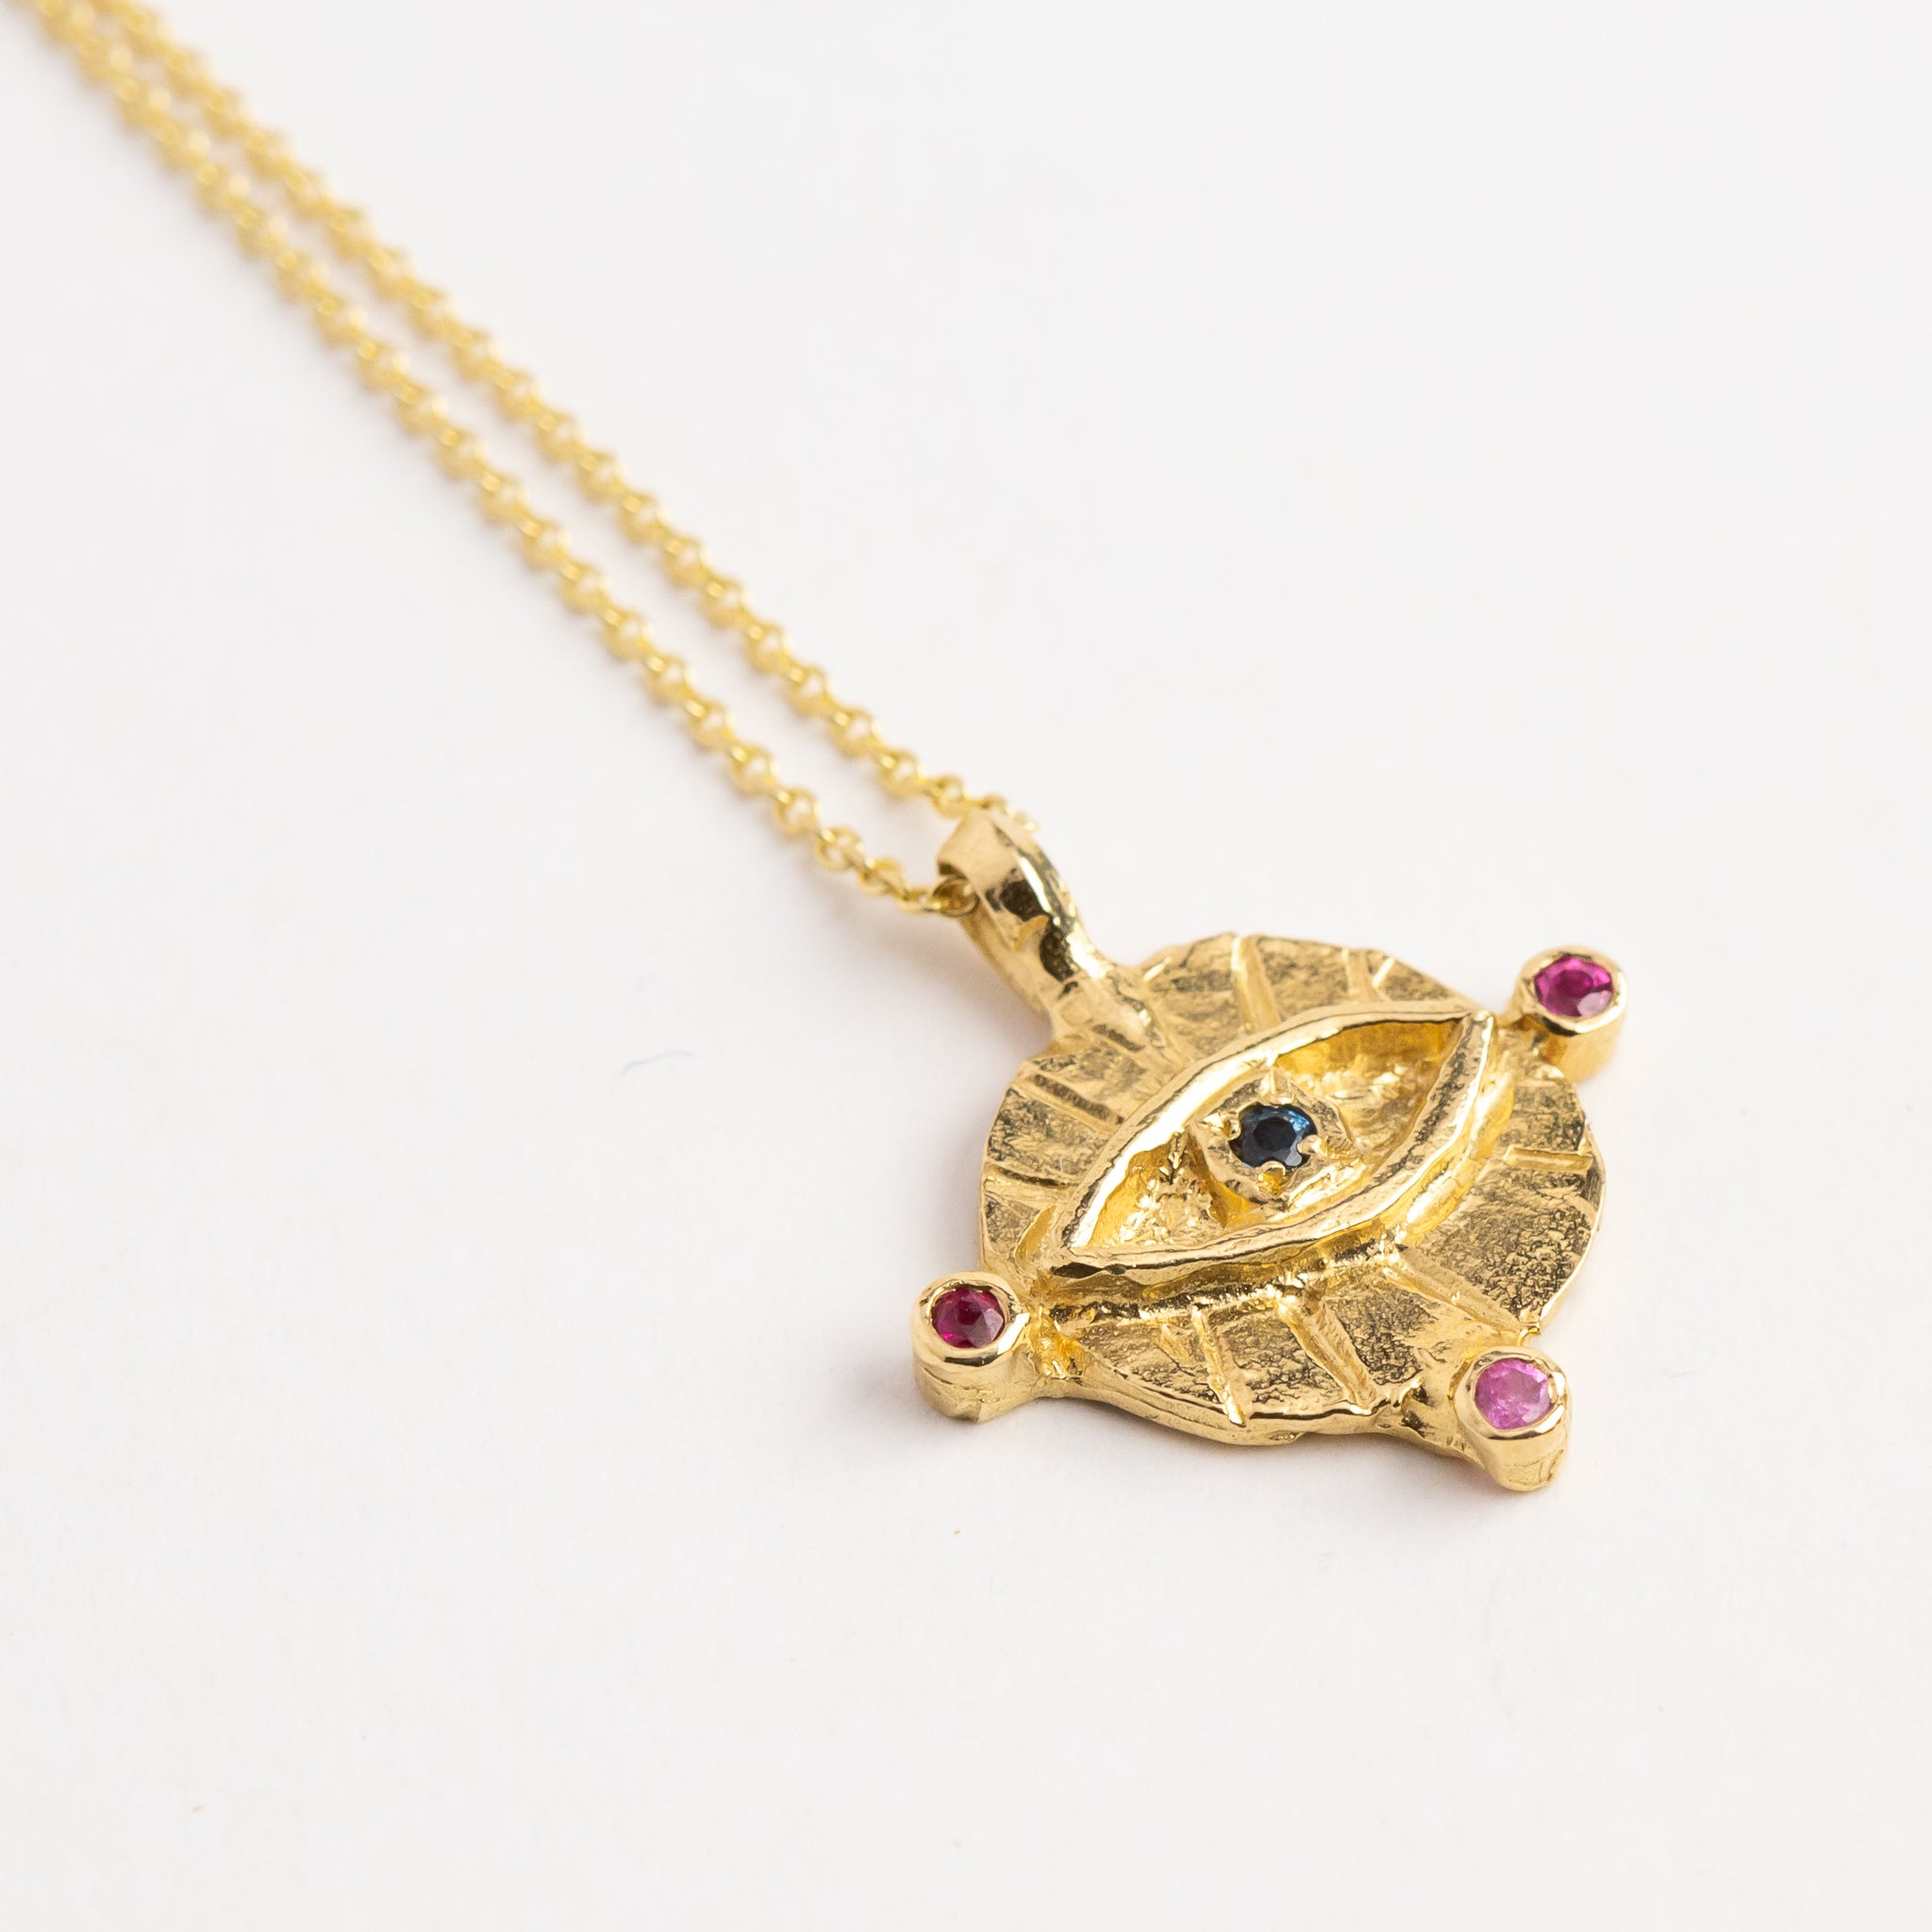 Pink blue and green ceylon sapphires, in gold eye pendant on 9ct gold chain, custom bespoke handmade jewellery